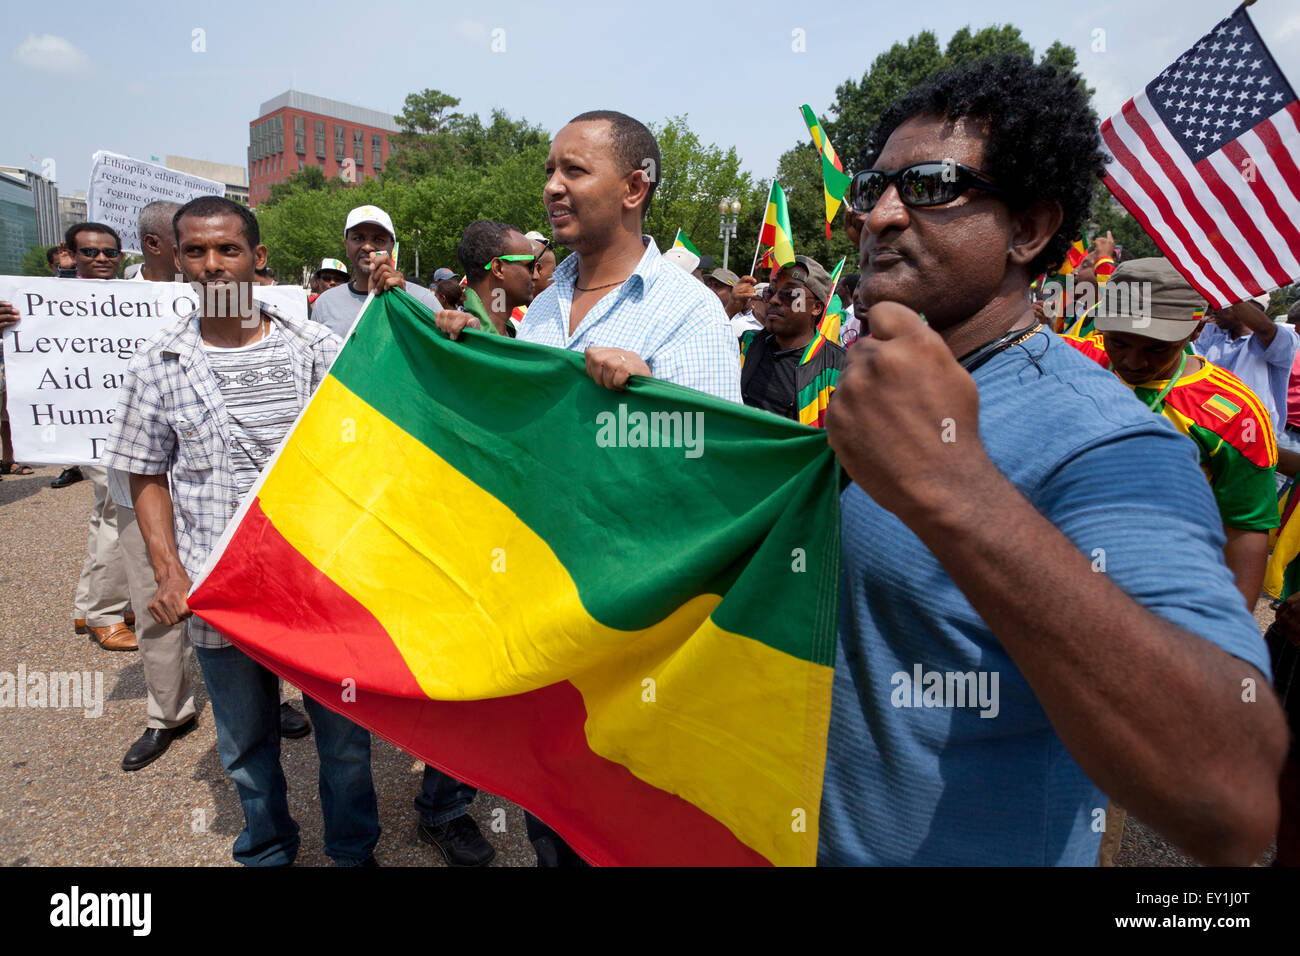 Ethiopian Americans protest outside of the White House against president Obama's planned official visit to Ethiopia - Stock Image